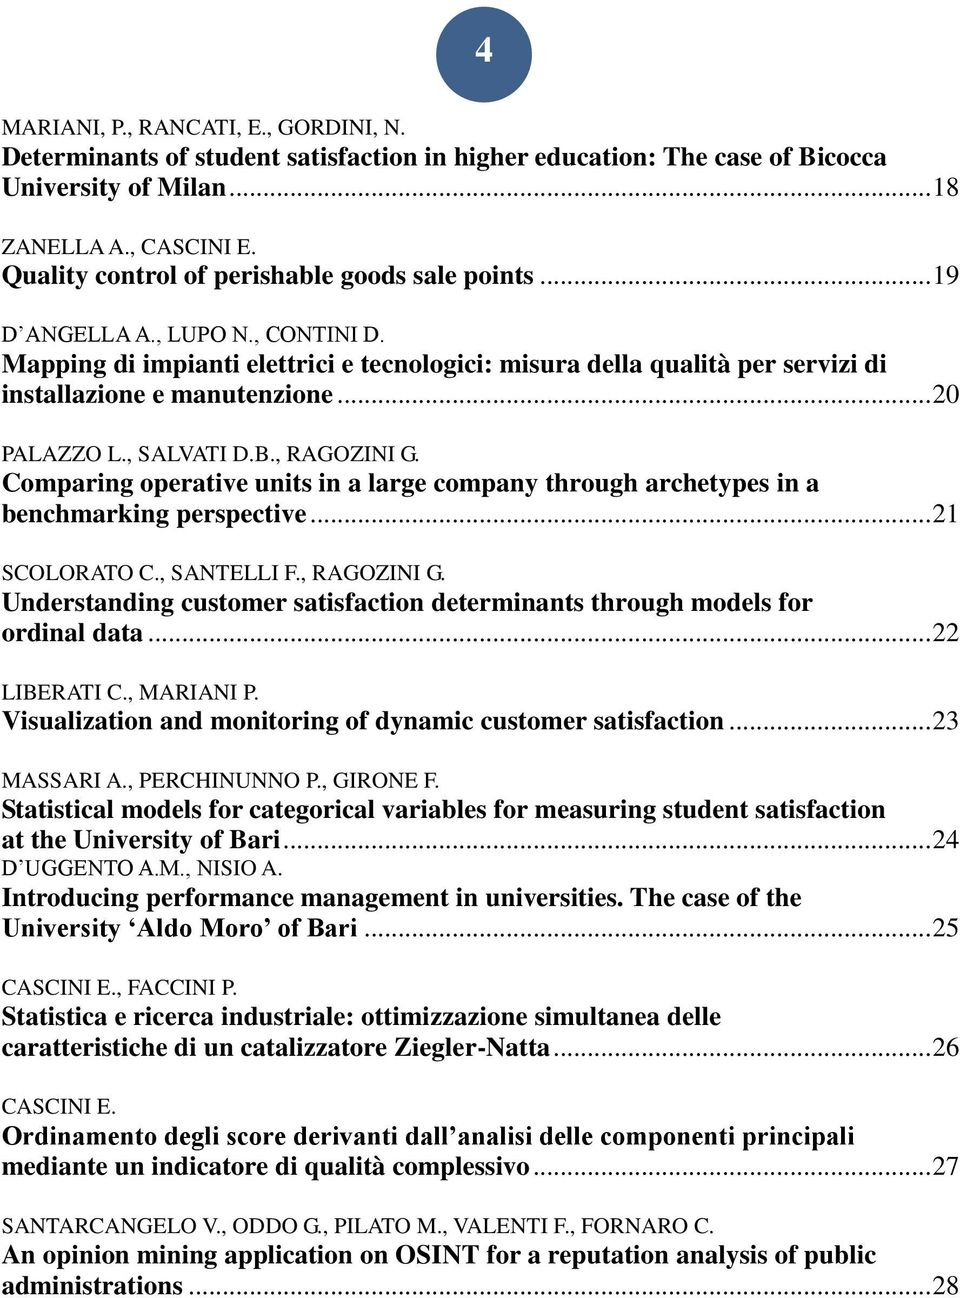 ..20 PALAZZO L., SALVATI D.B., RAGOZINI G. Comparing operative units in a large company through archetypes in a benchmarking perspective...21 SCOLORATO C., SANTELLI F., RAGOZINI G. Understanding customer satisfaction determinants through models for ordinal data.